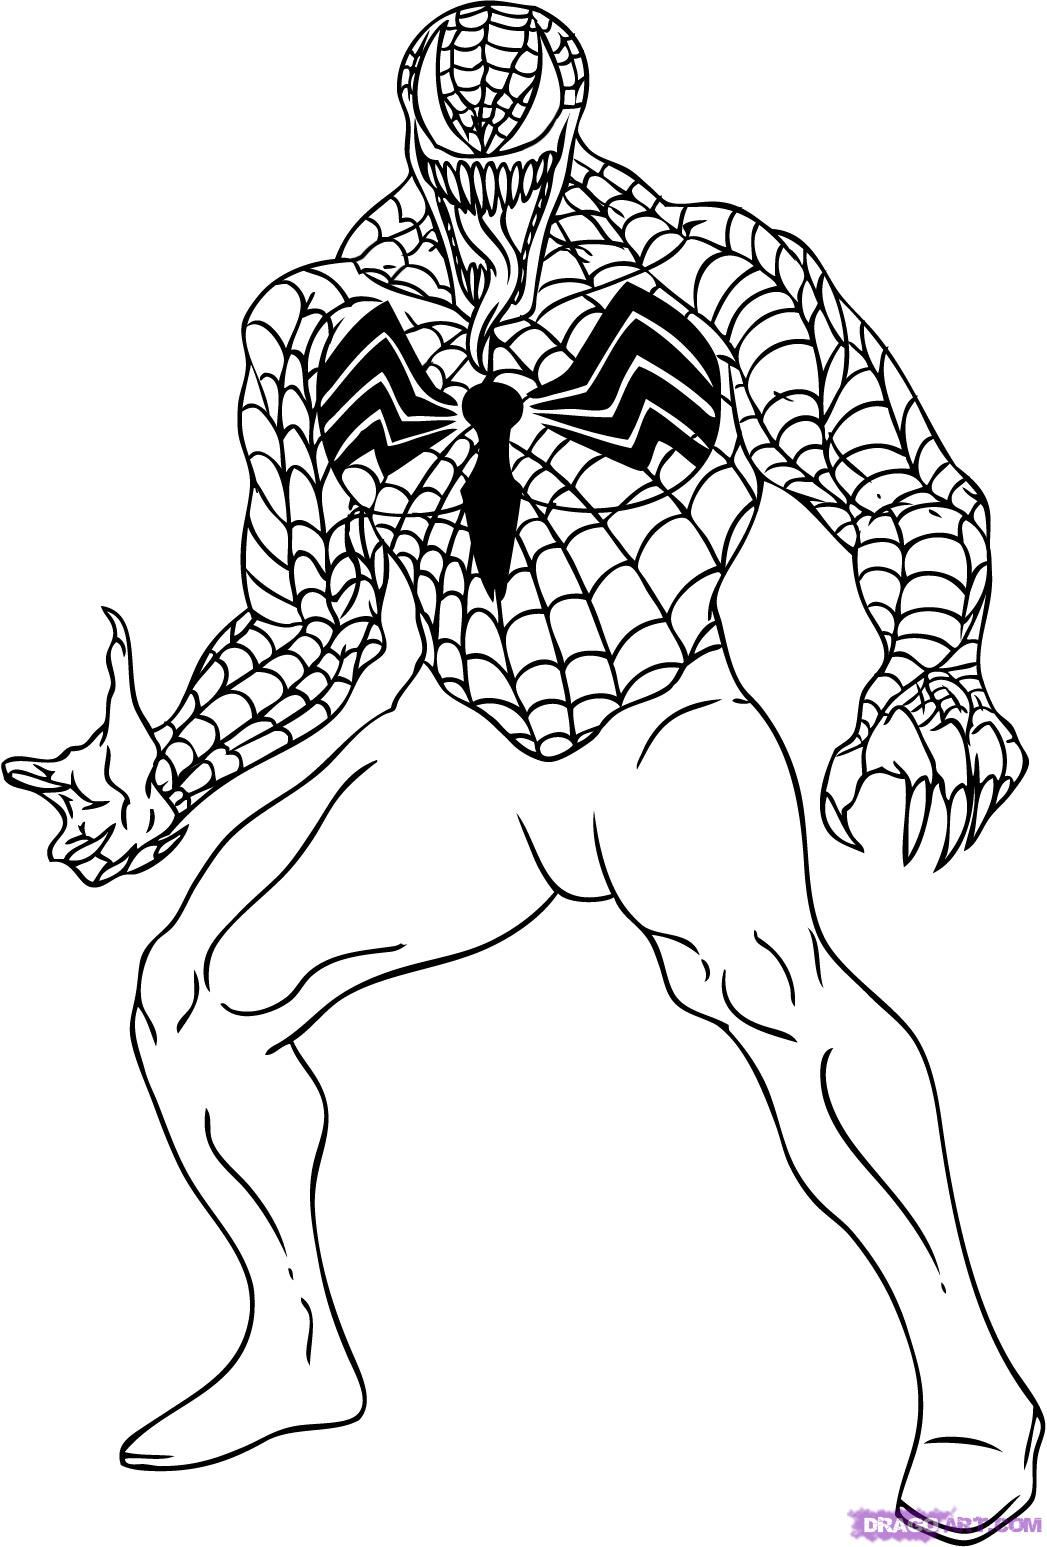 Venom Spiderman Kleurplaten.Doc Ock Coloring Pages At Getdrawings Com Free For Personal Use